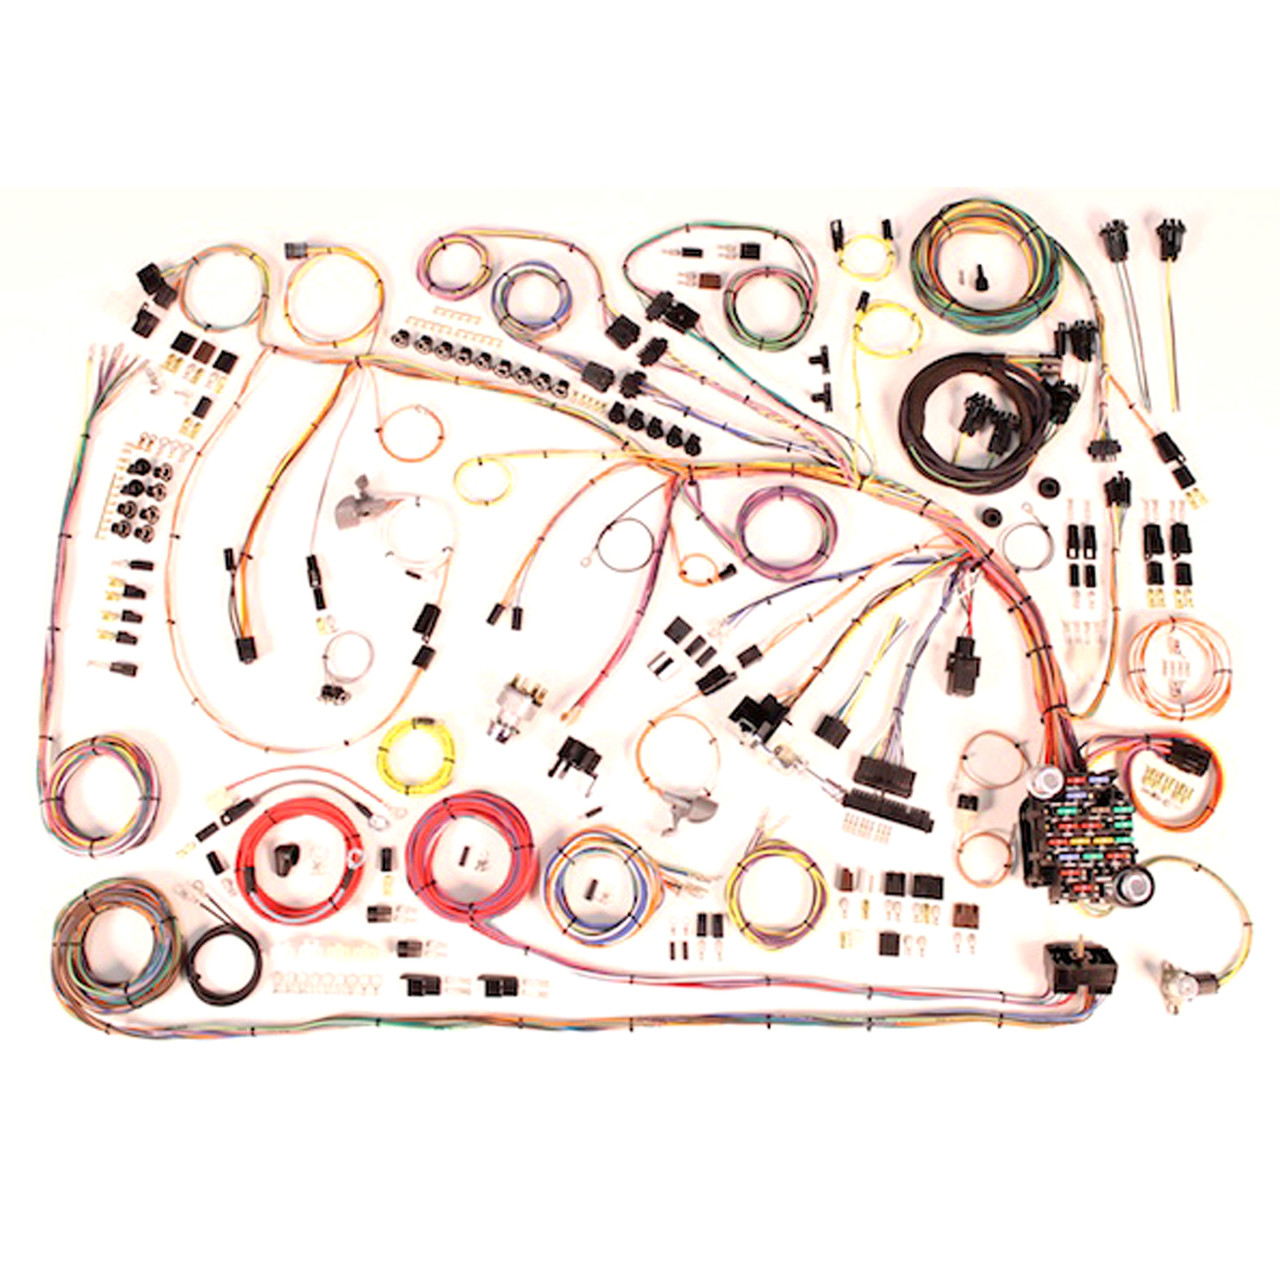 small resolution of american autowire 1965 chevrolet impala classic update complete wiring harness for 1965 chevy impala